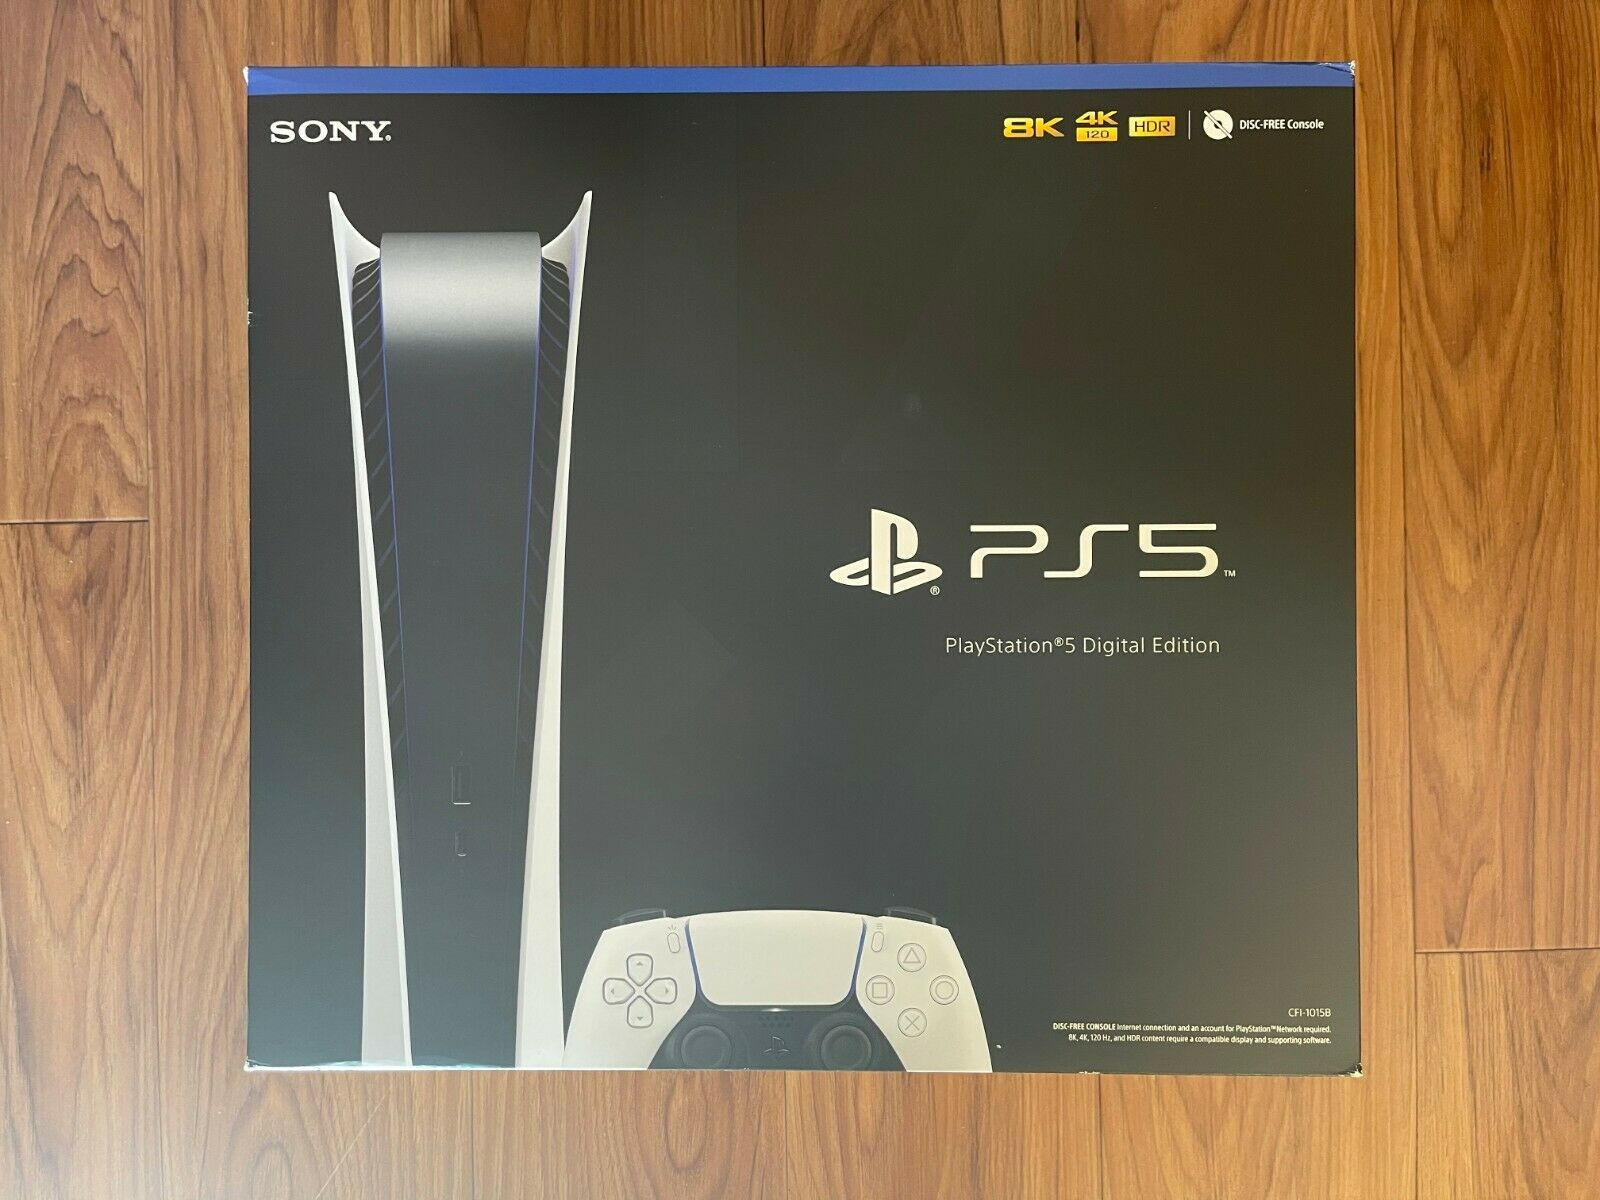 🔥🔥🔥🔥 SONY PS5 Digital Edition Console BRAND NEW SEALED READY TO SHIP🔥🔥🔥🔥